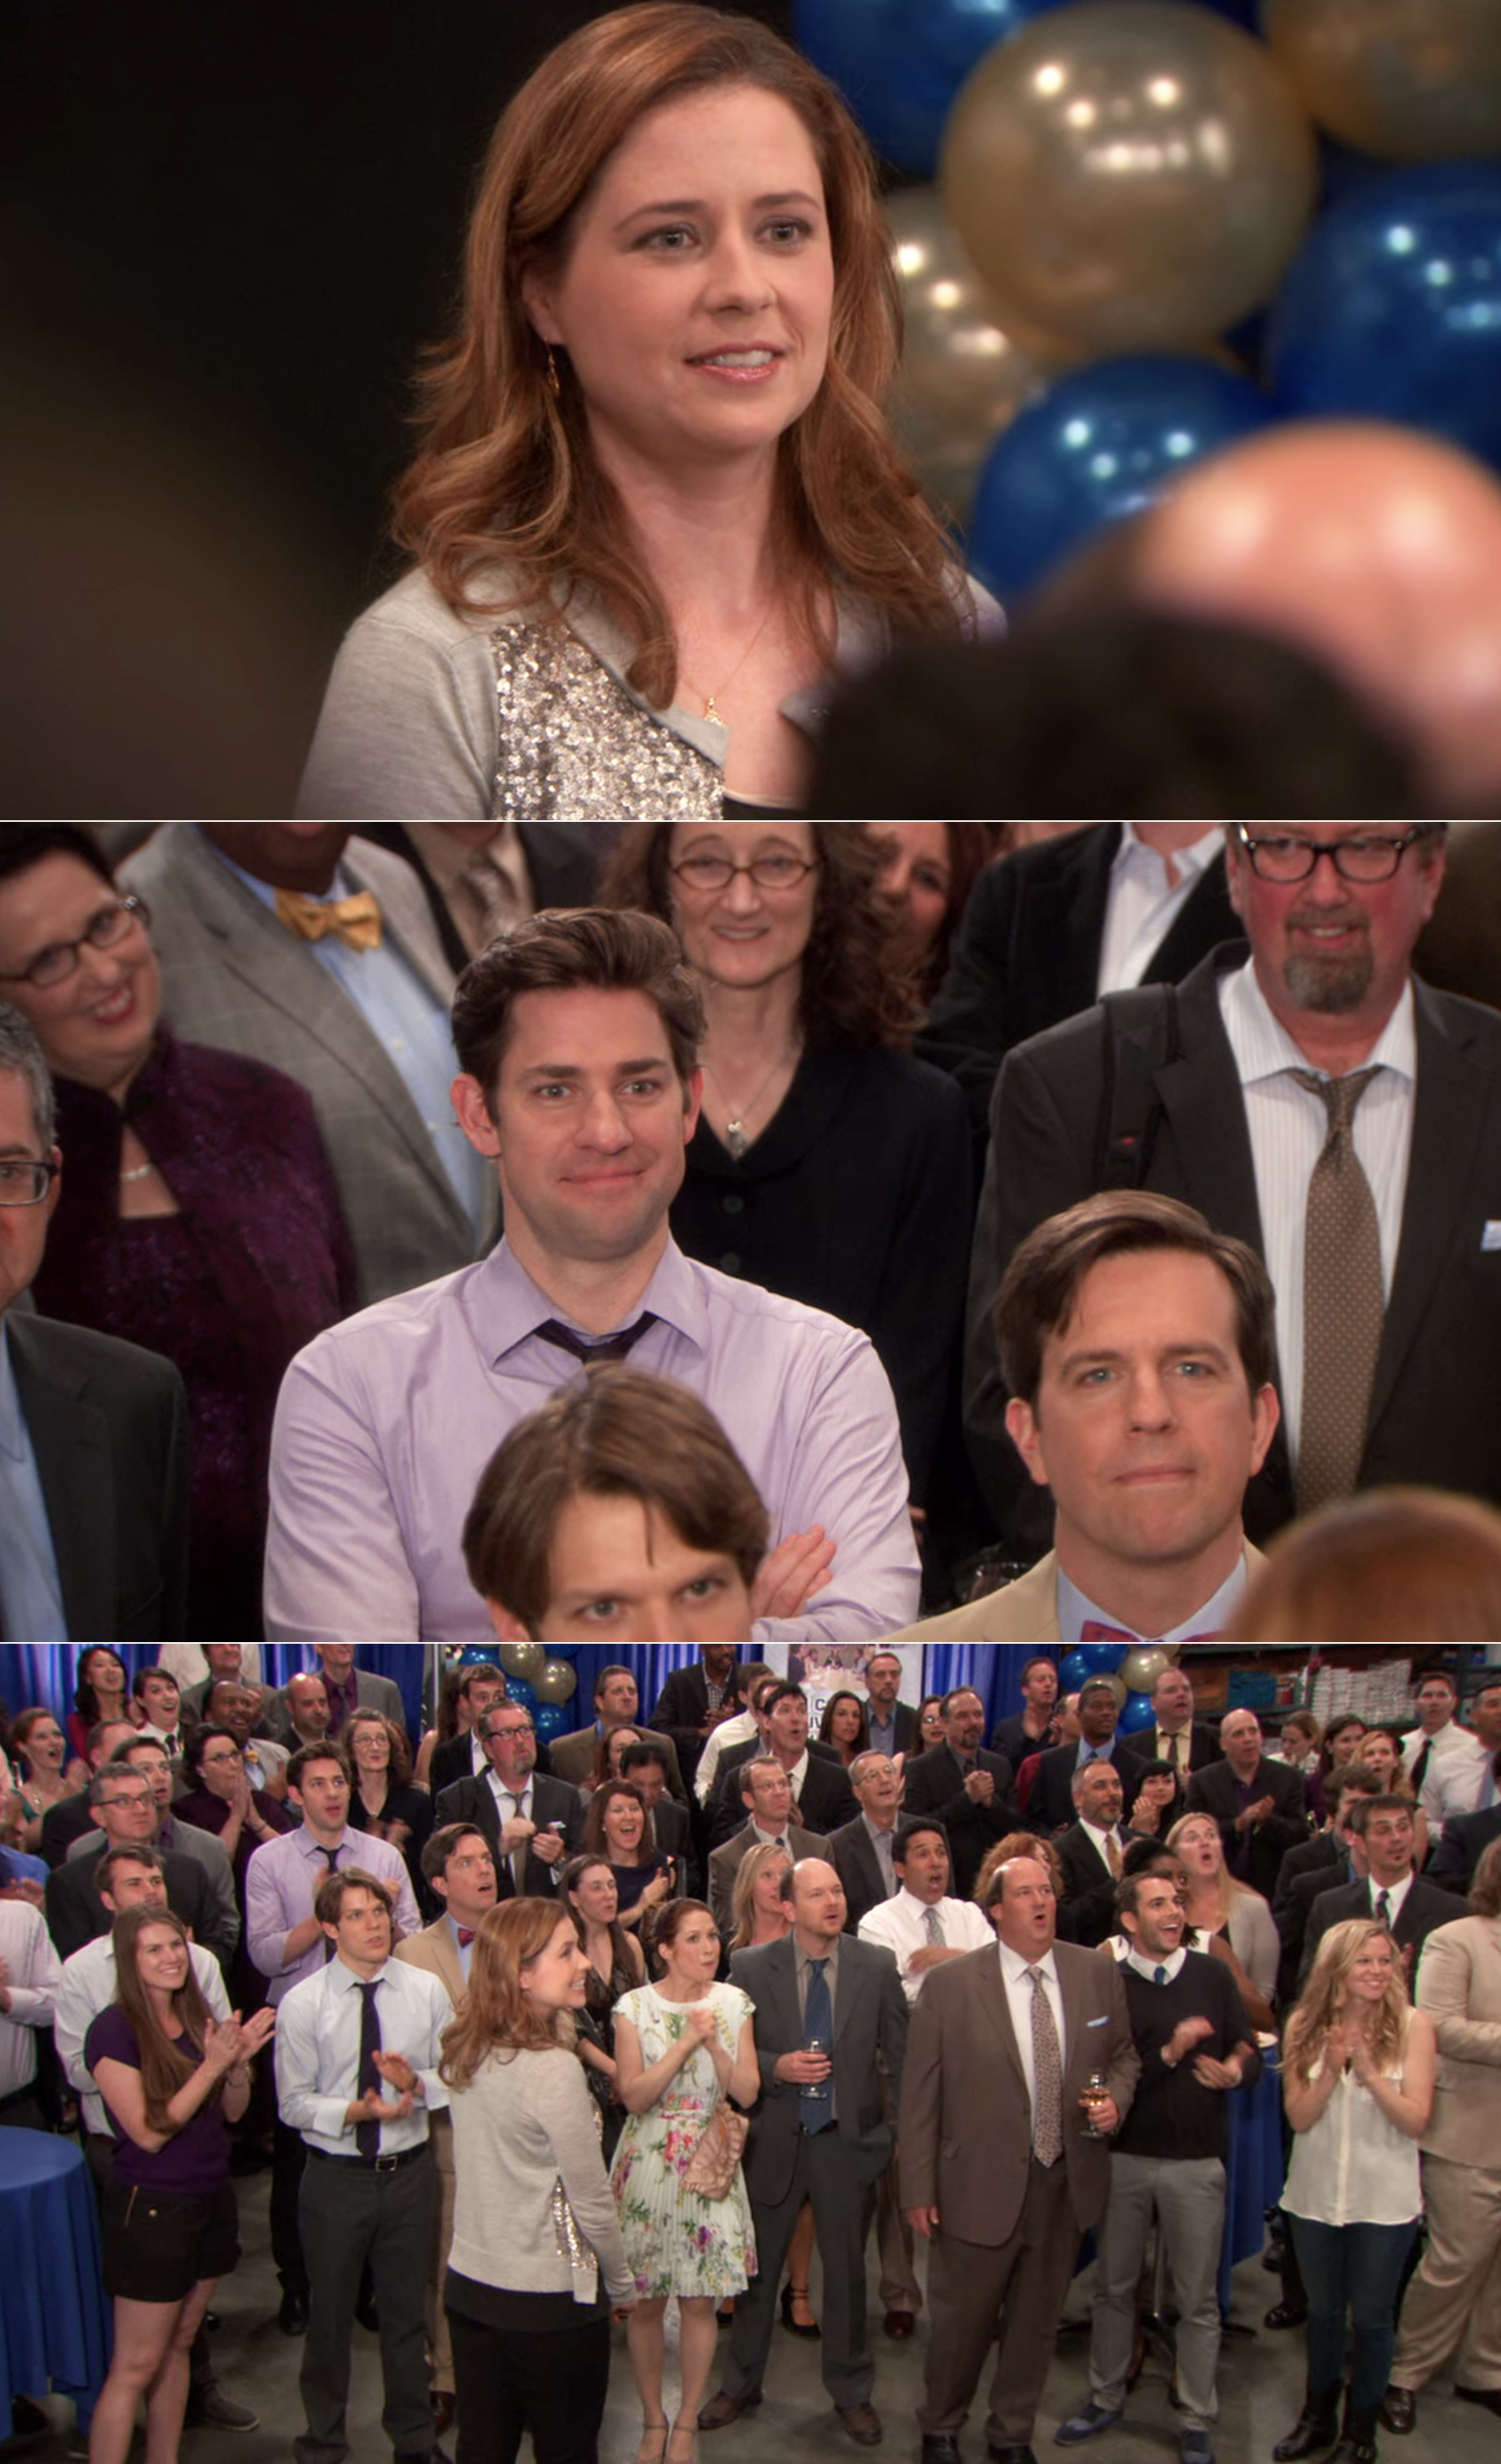 Everyone at Dunder Mifflin gathered and looking at Pam's latest painting